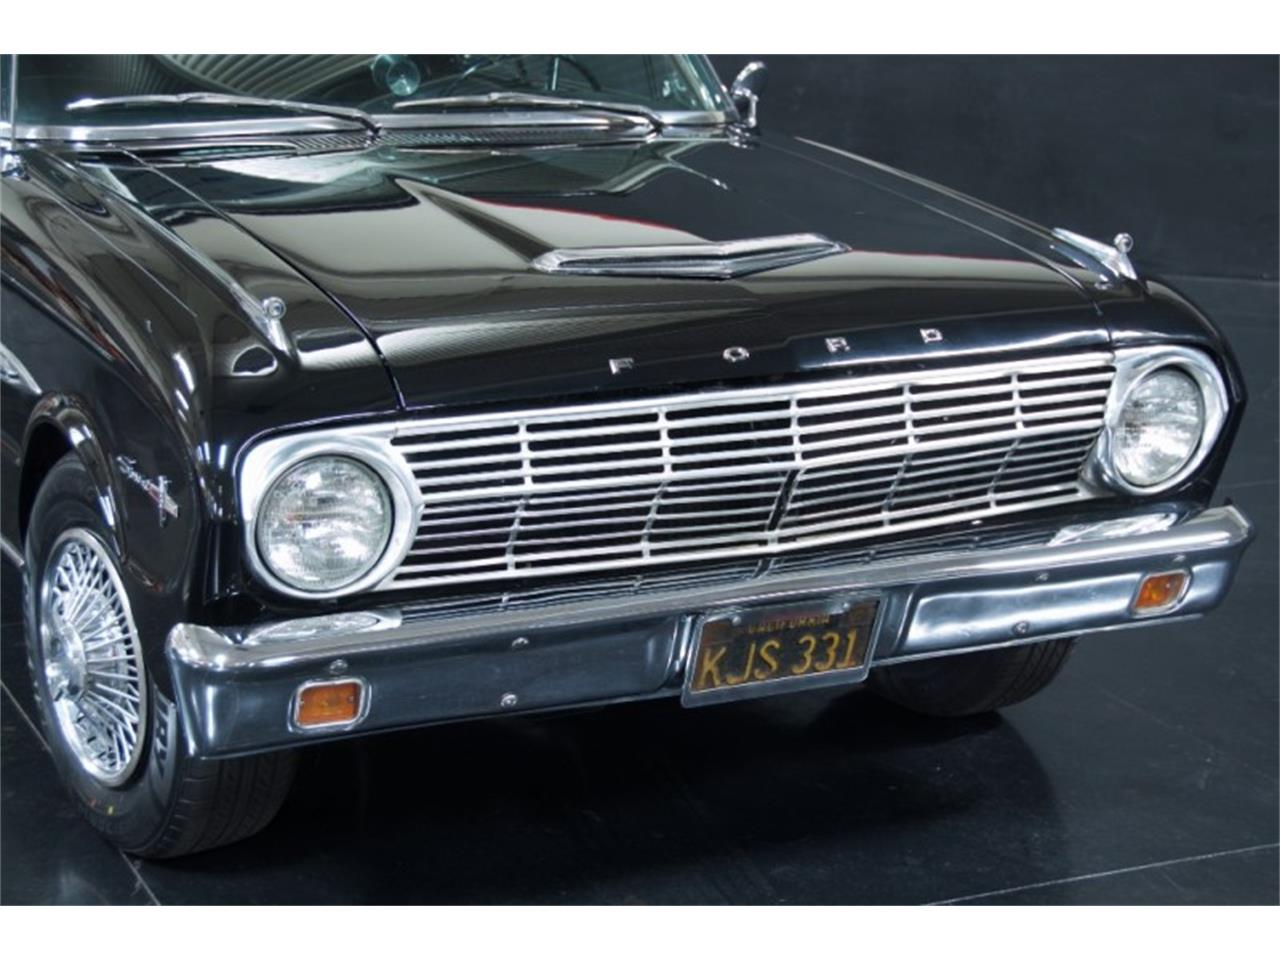 1963 Ford Falcon for sale in Milpitas, CA – photo 42